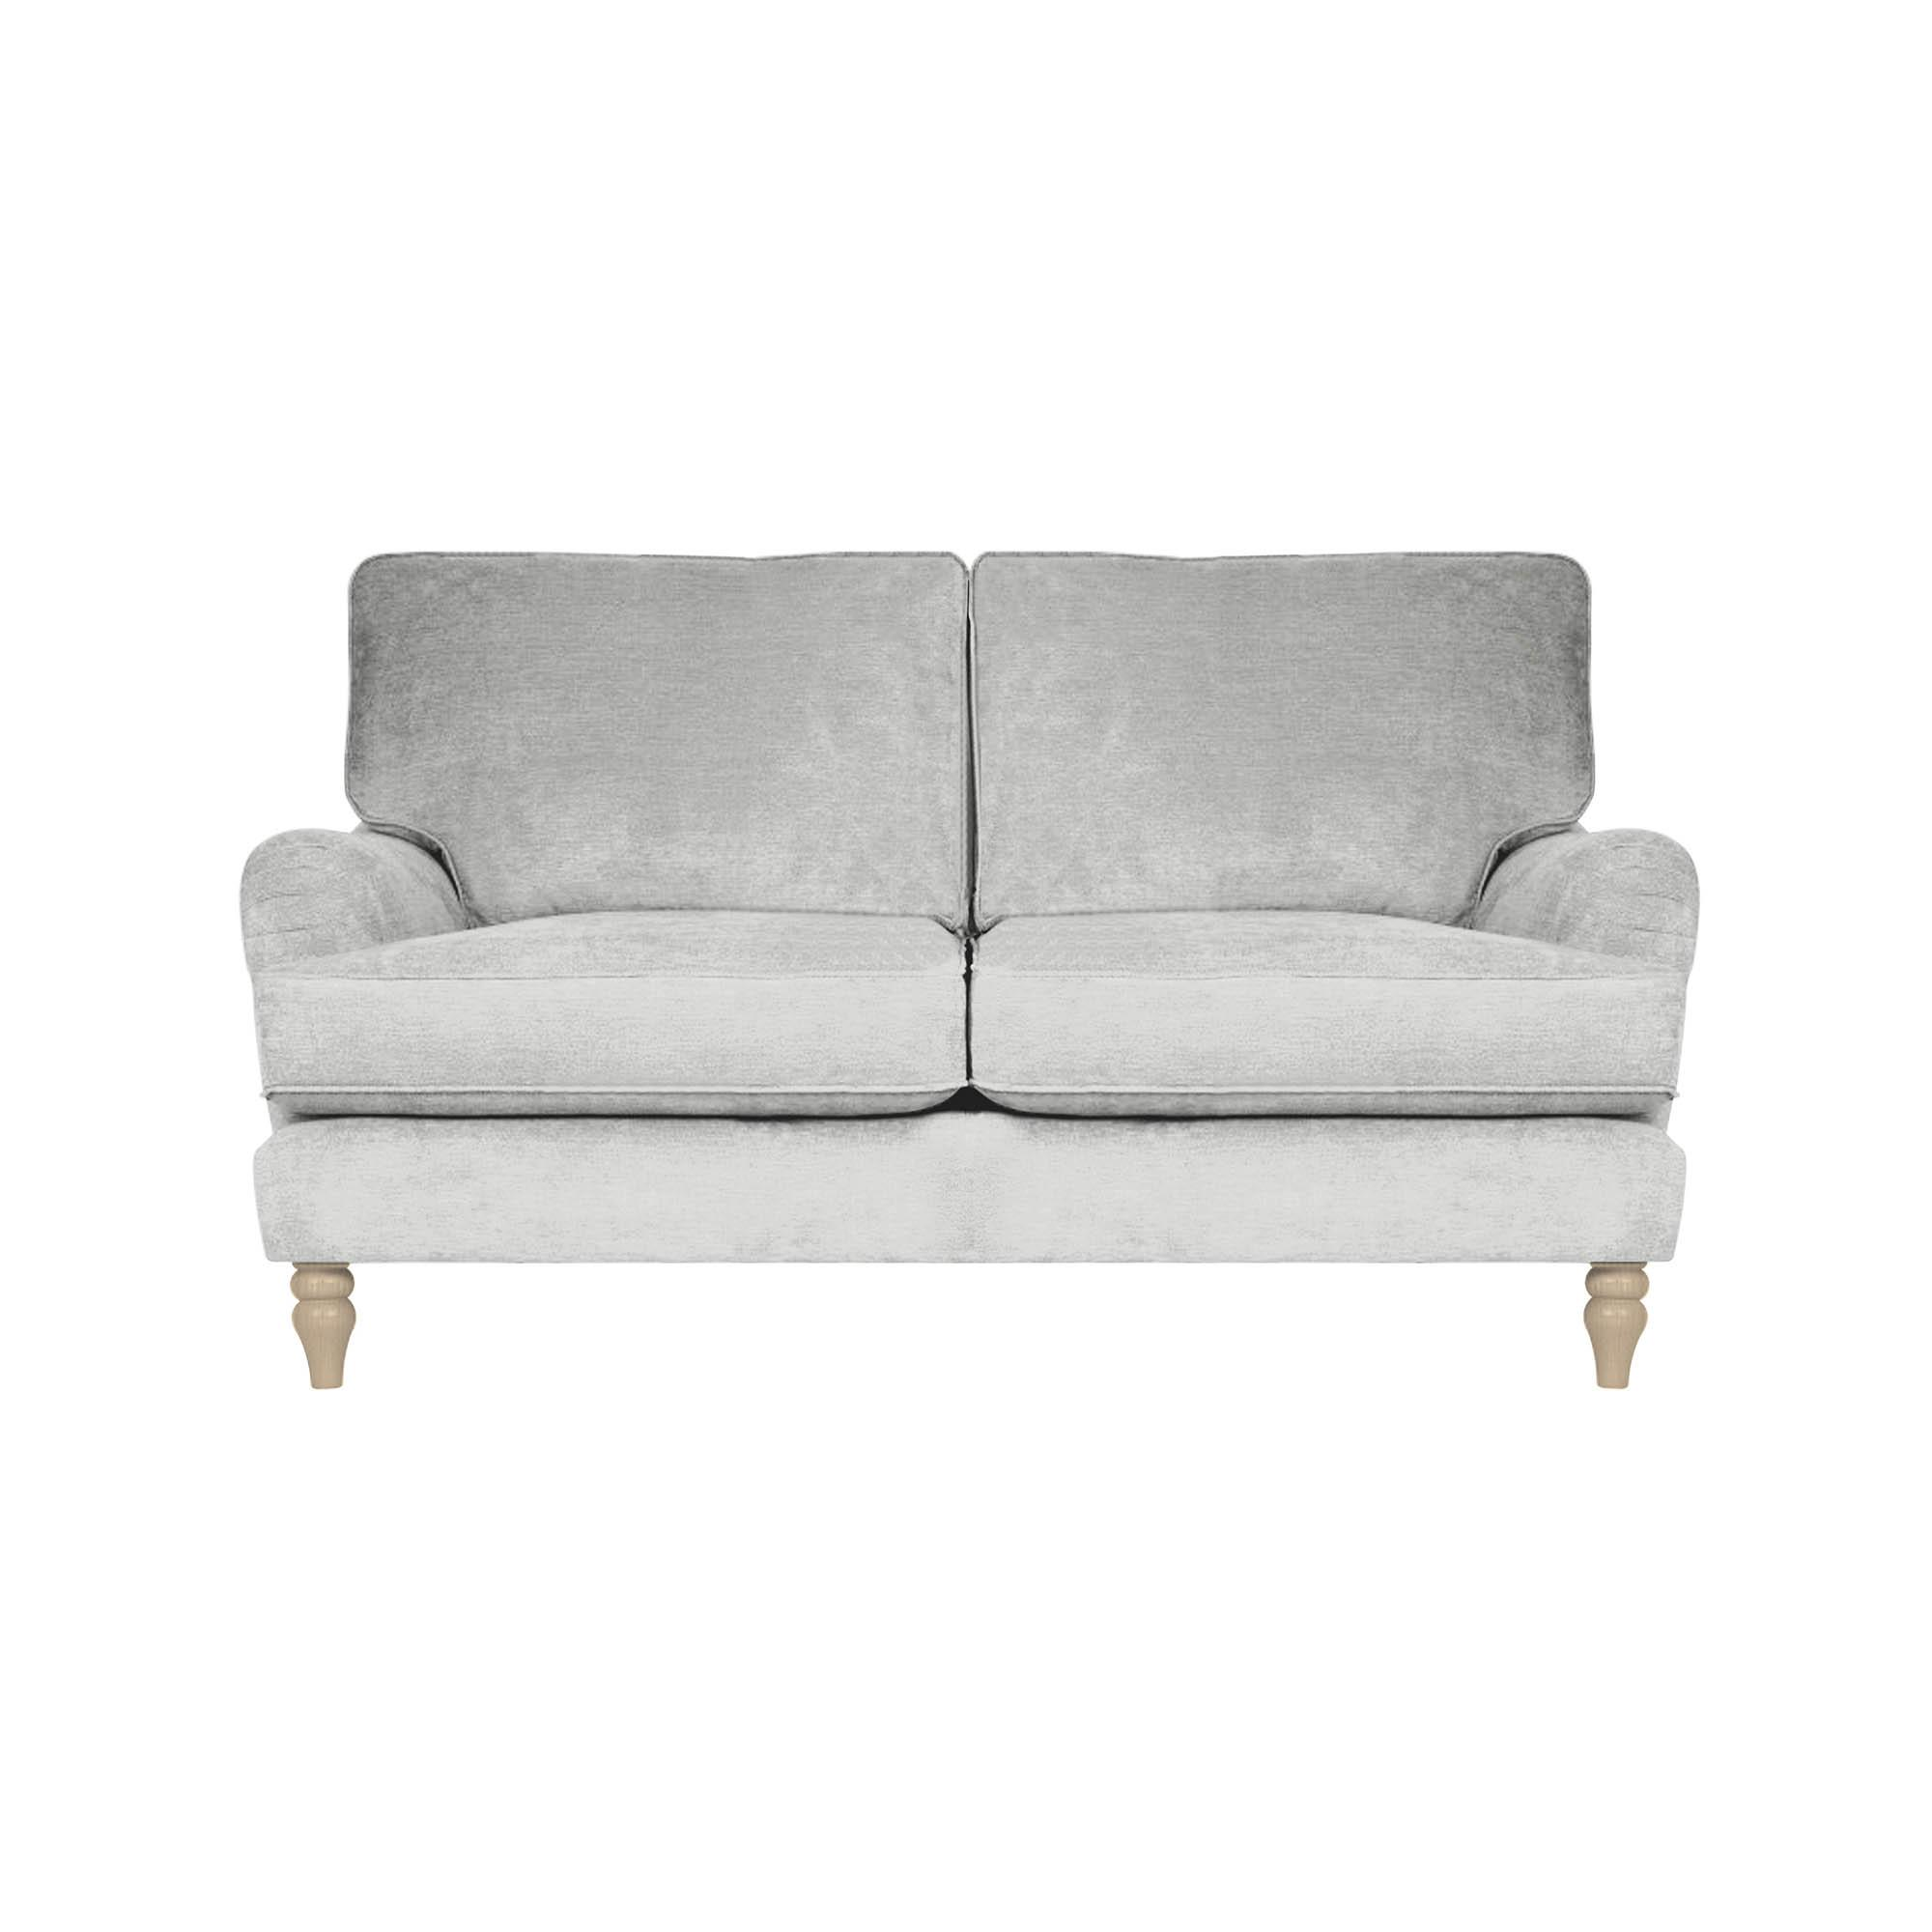 small sofas bella 2 seater sofa FBKTWUD